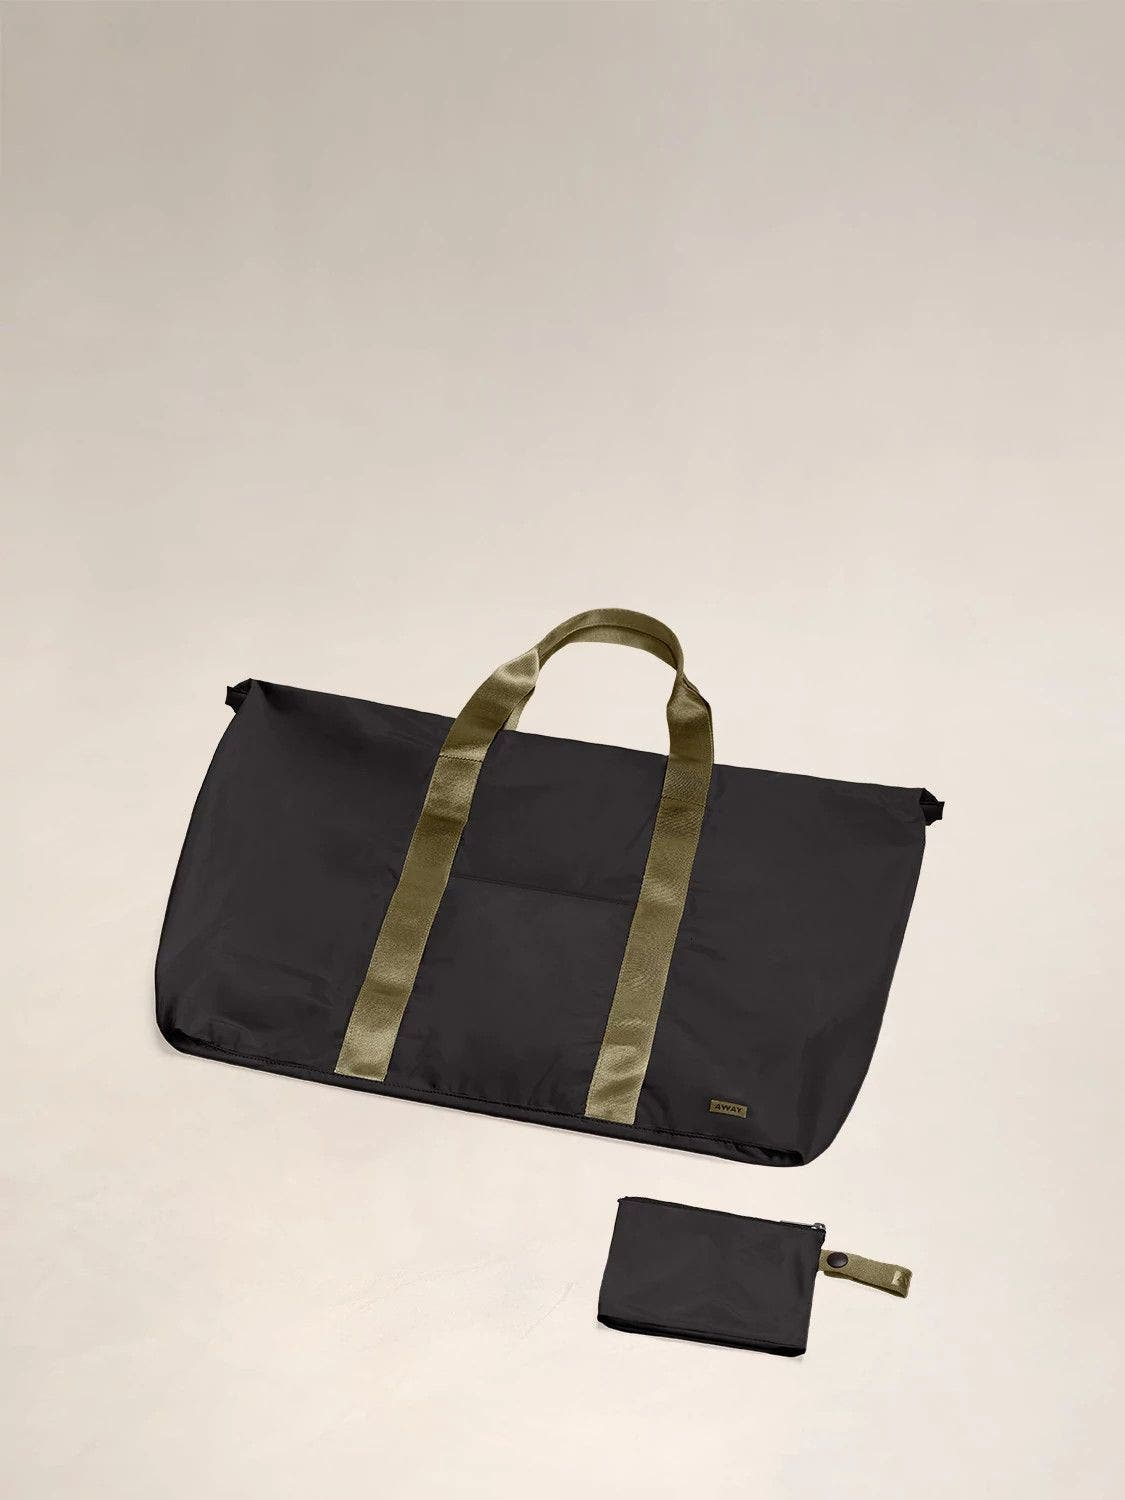 Flat view of the Away packable carryall in the color black.